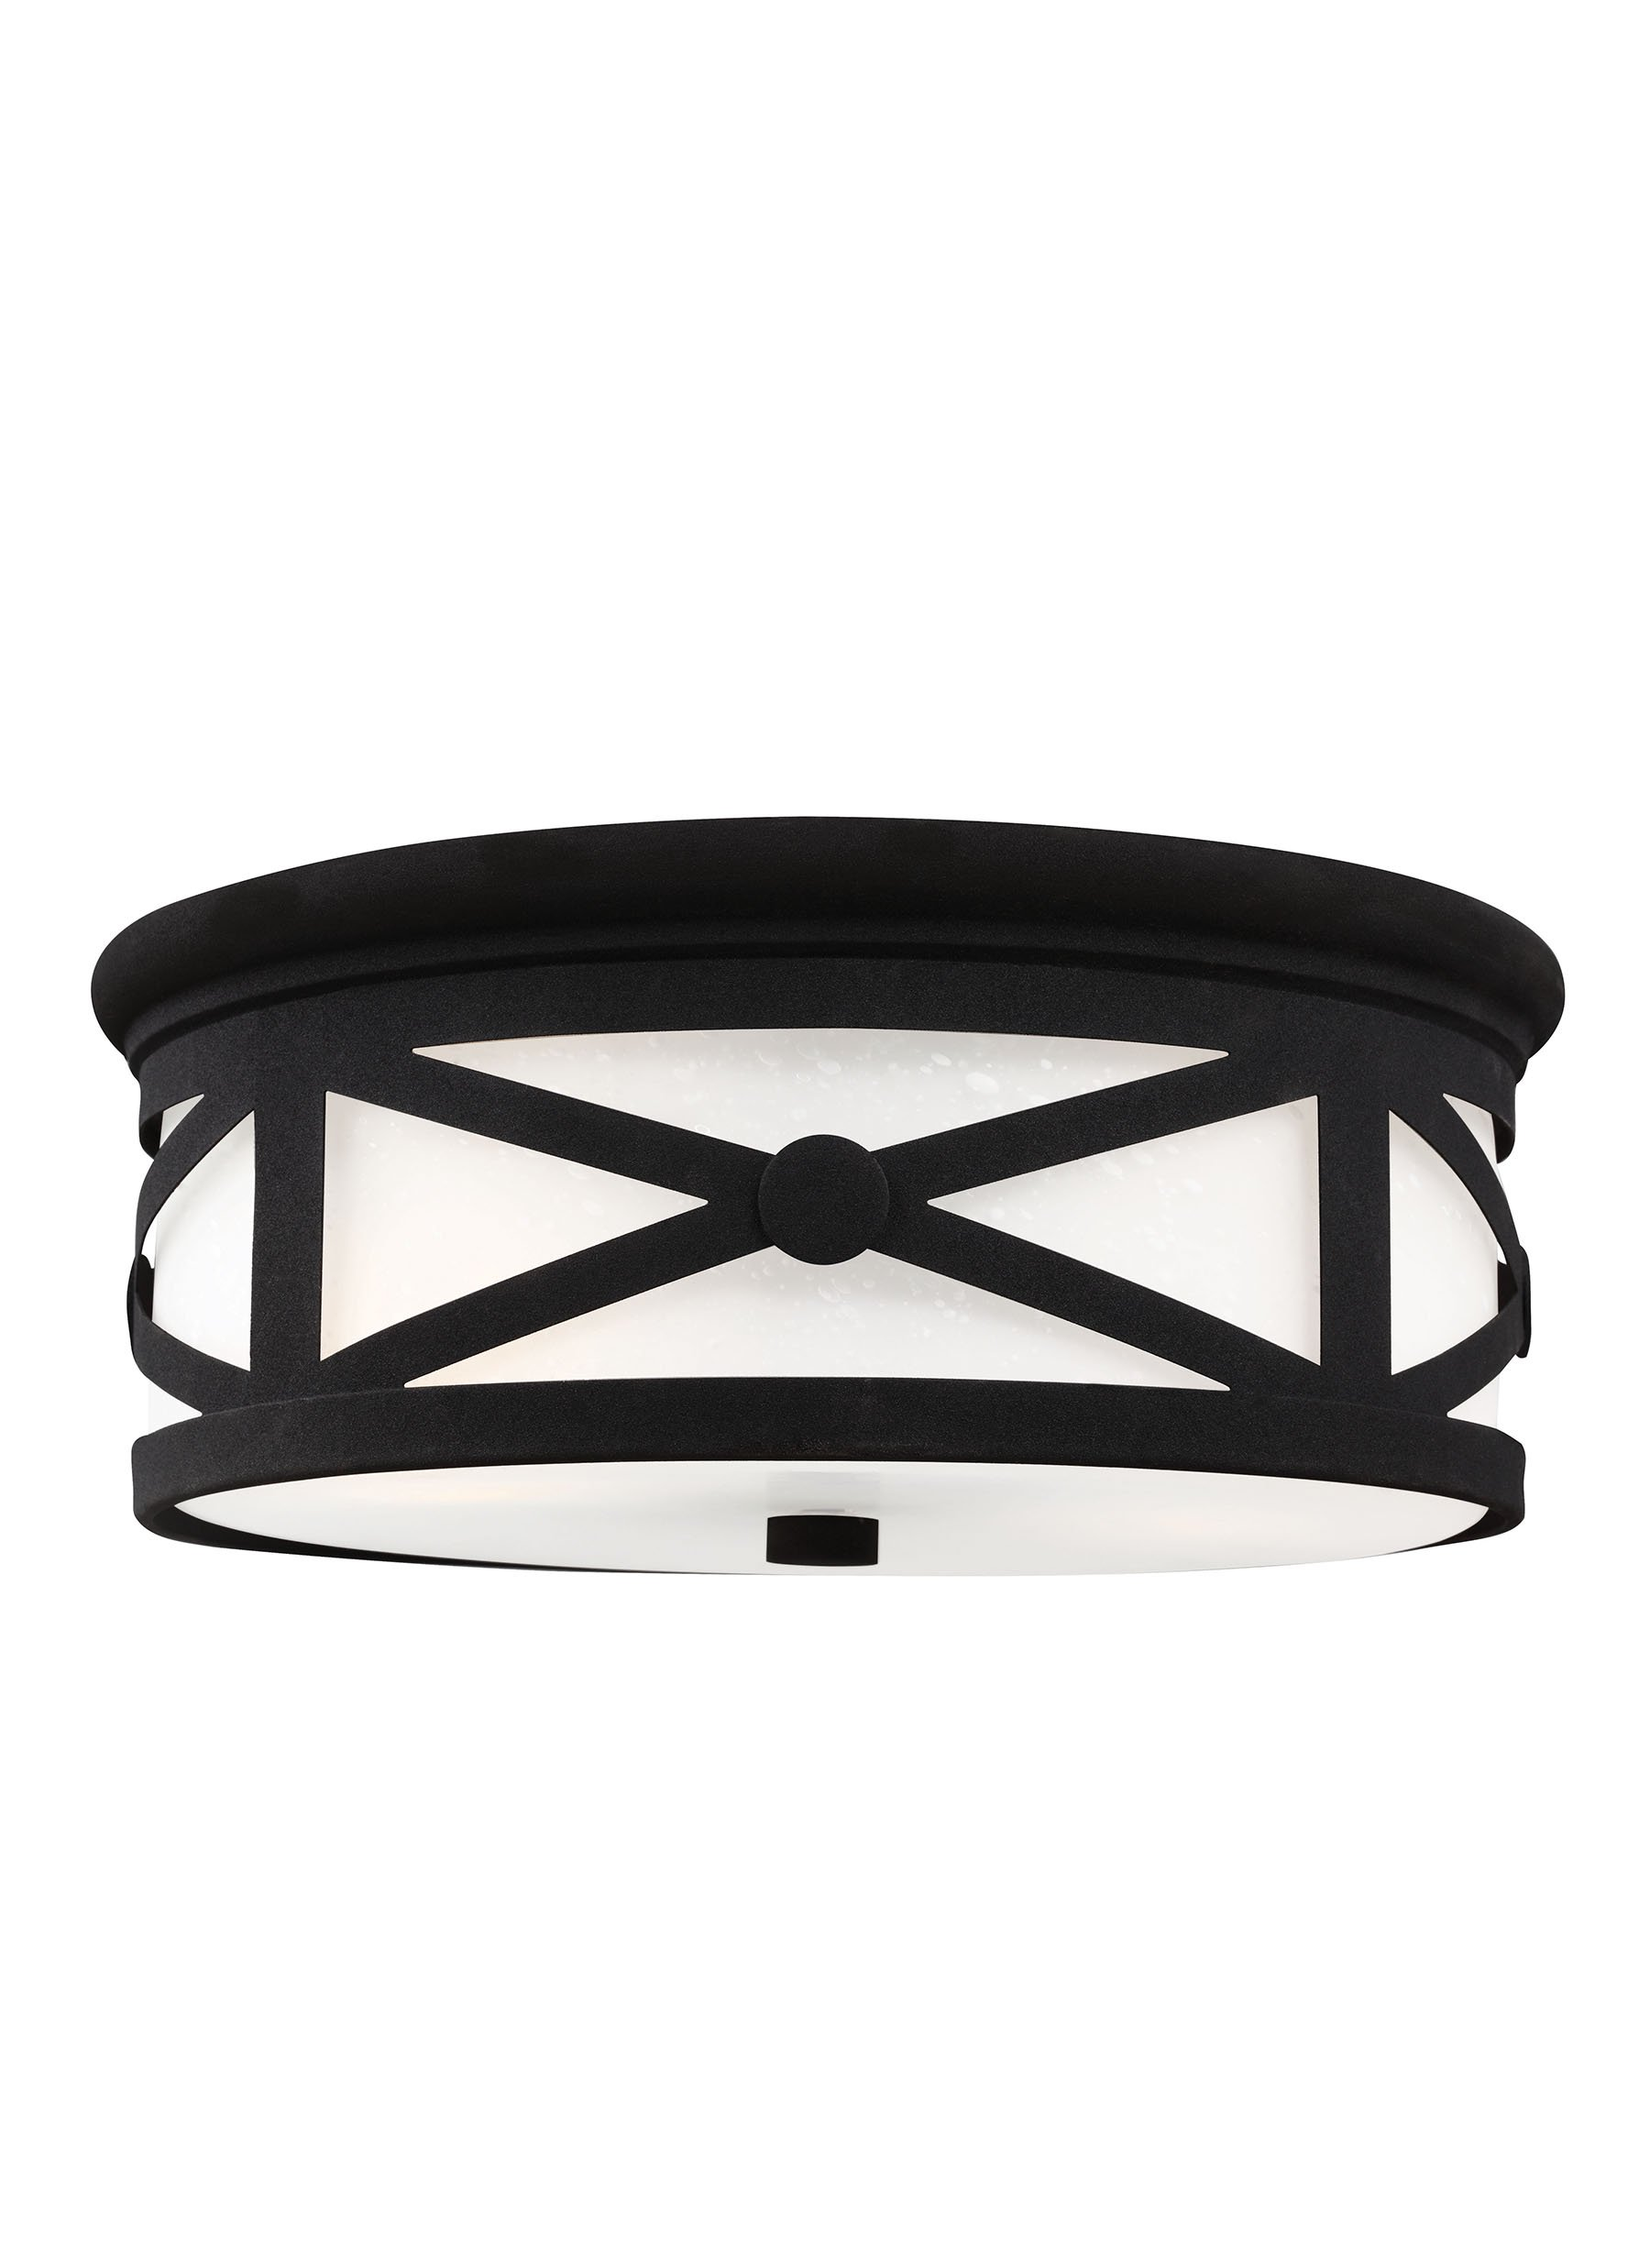 Sea Gull 7821452-12 Lakeview Outdoor Ceiling Flush Mount, 2-Light 120 Total Watts, Black